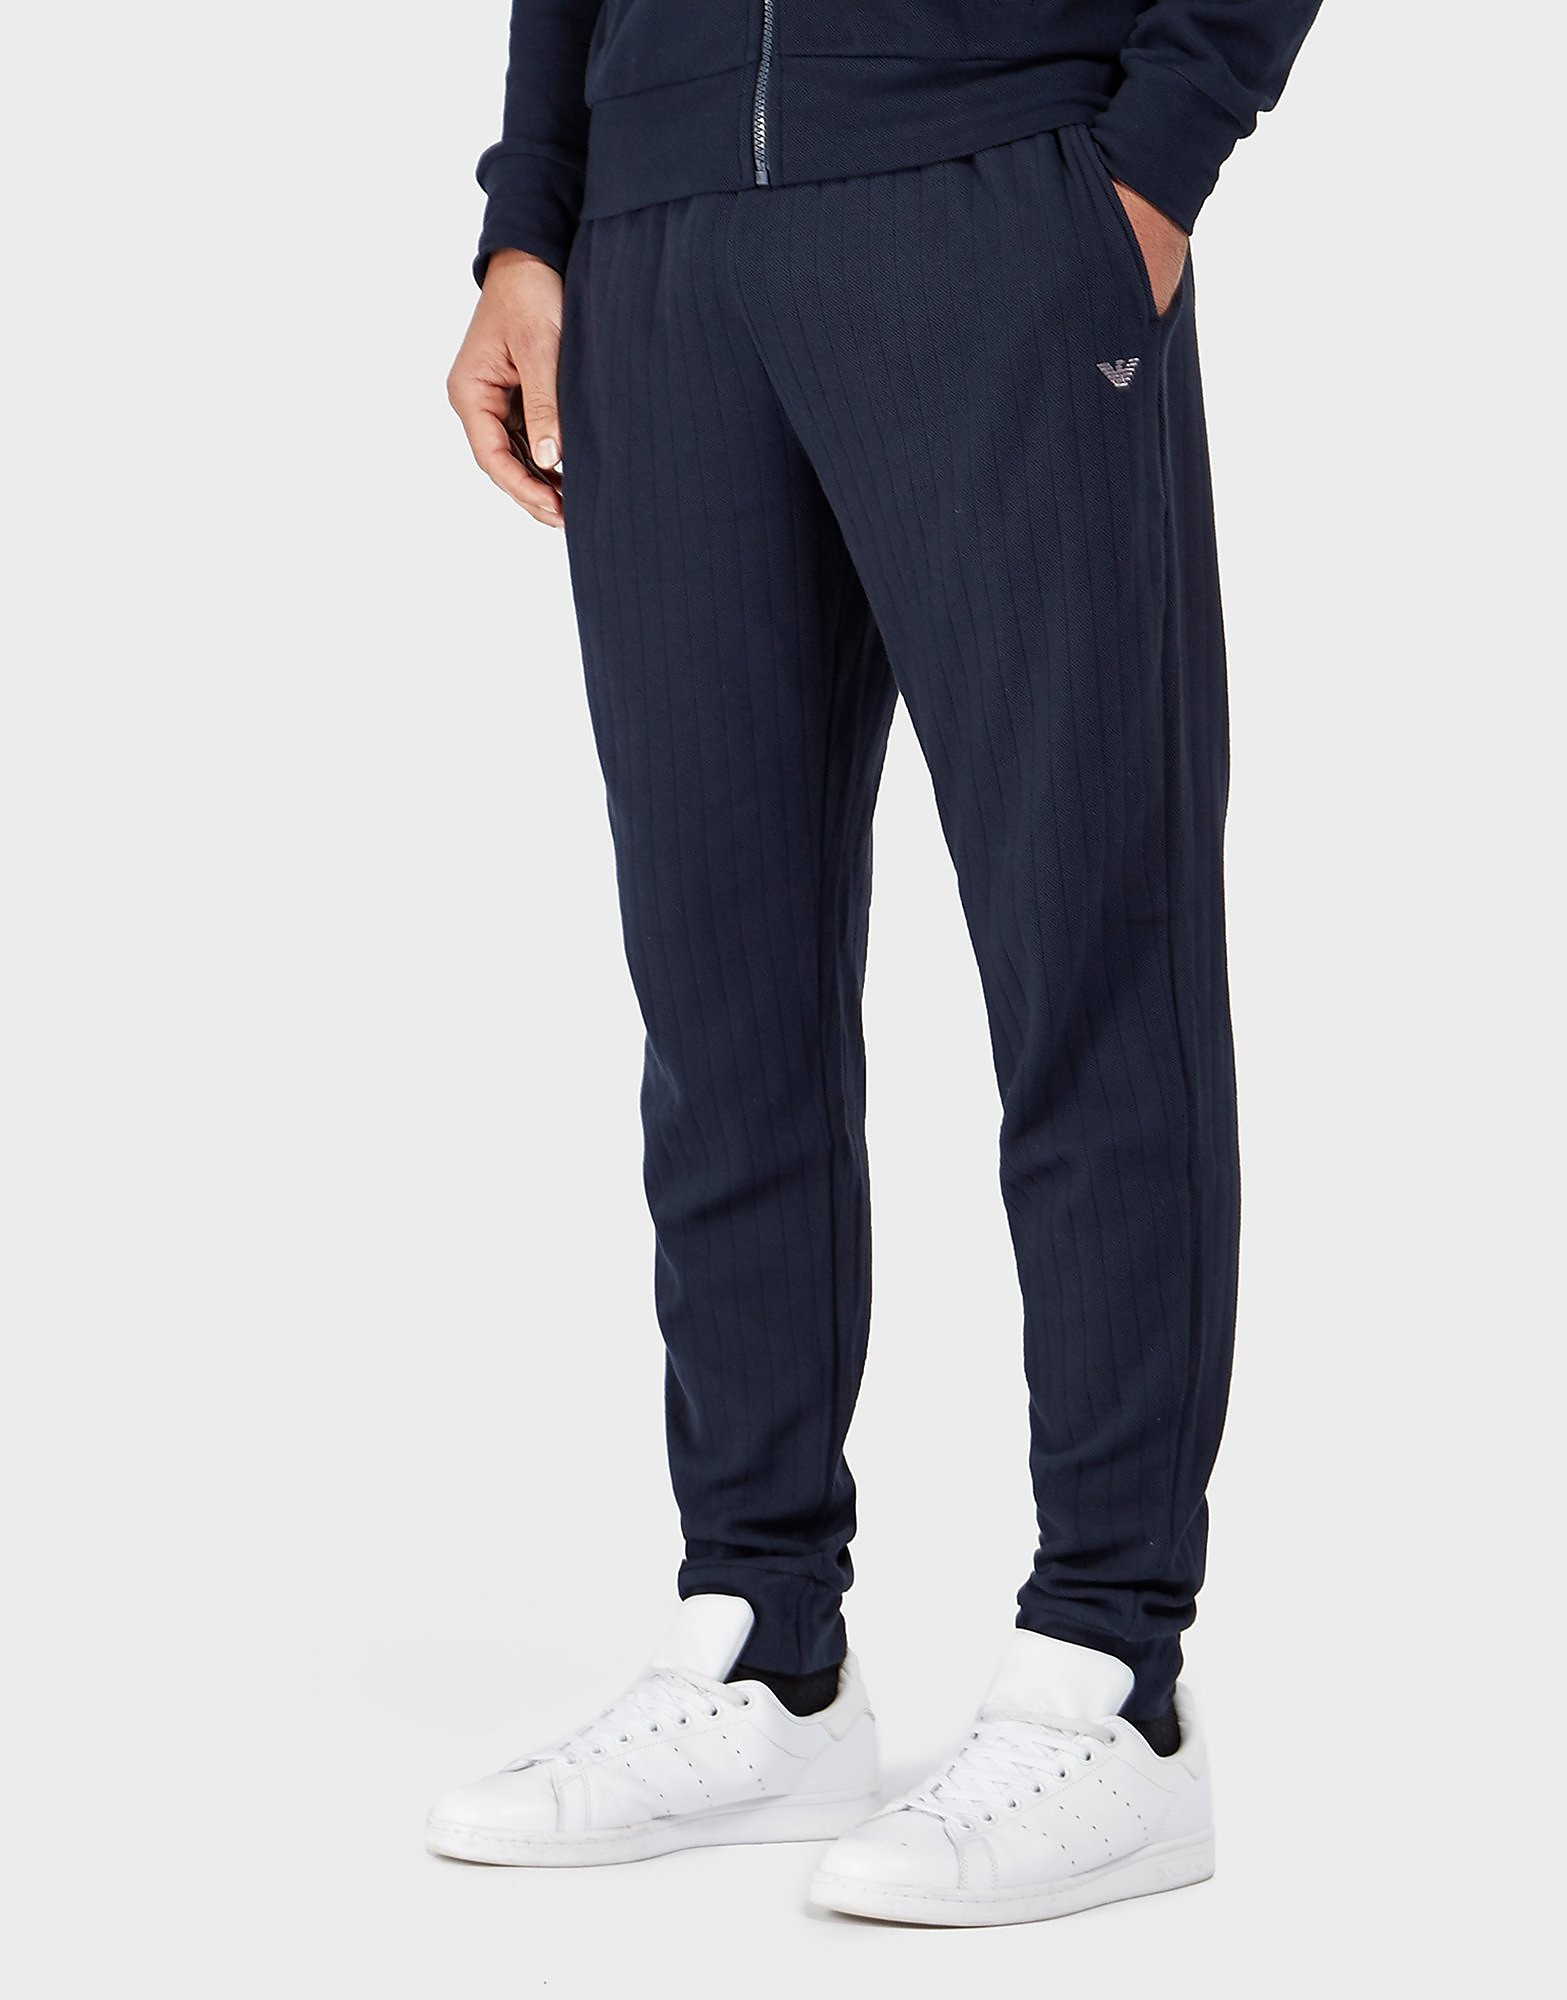 Emporio Armani Interlock Cuffed Track Pants